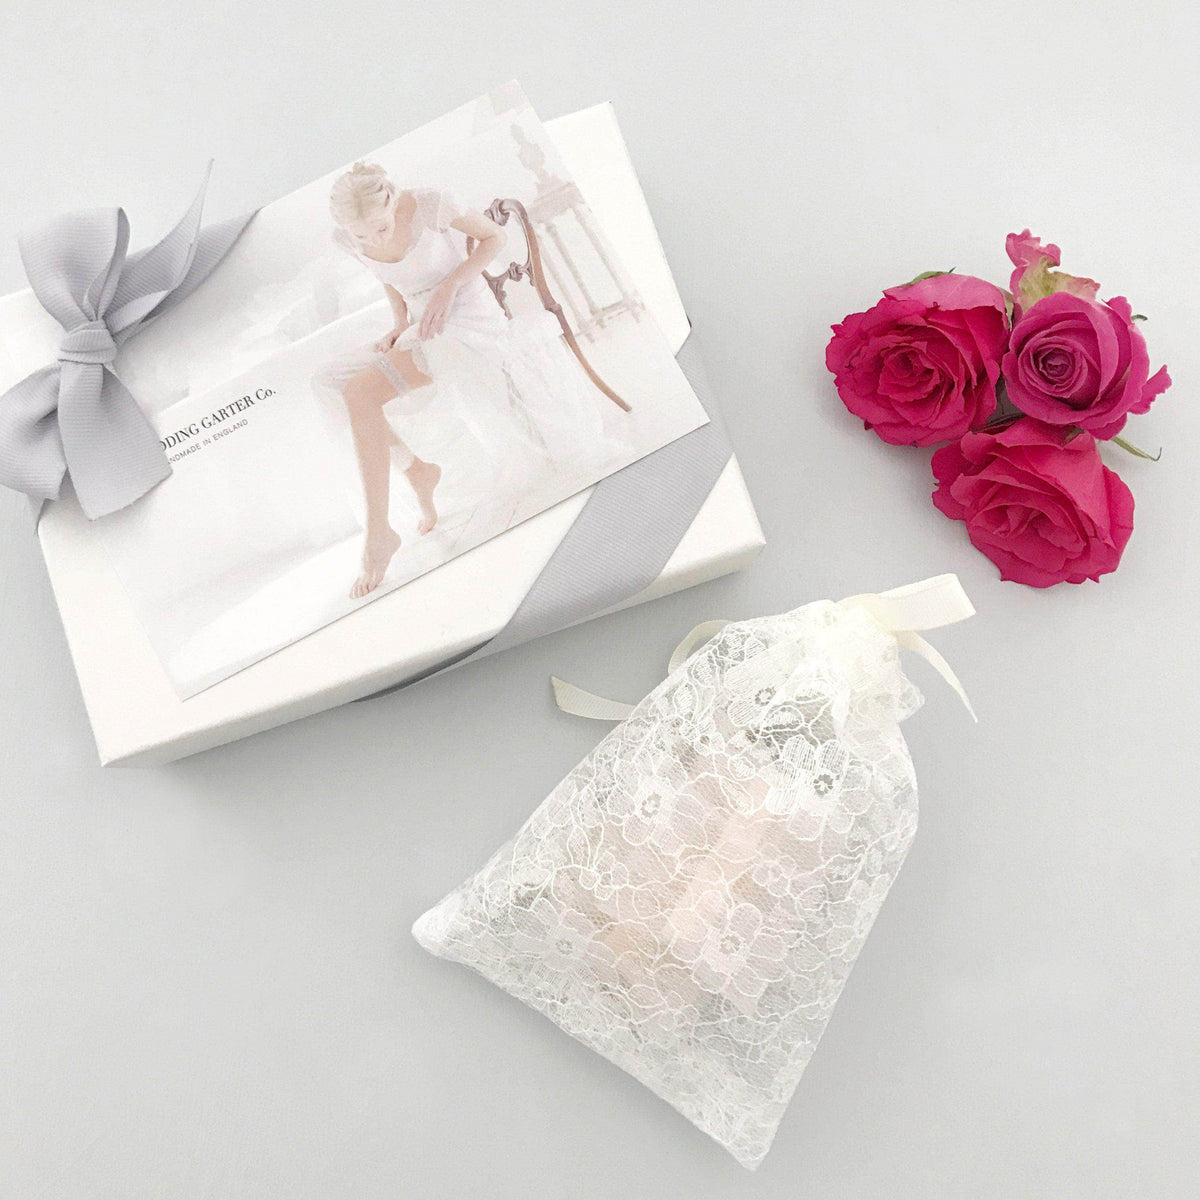 Pure soft silk tulle wedding garter - 'Clarence'